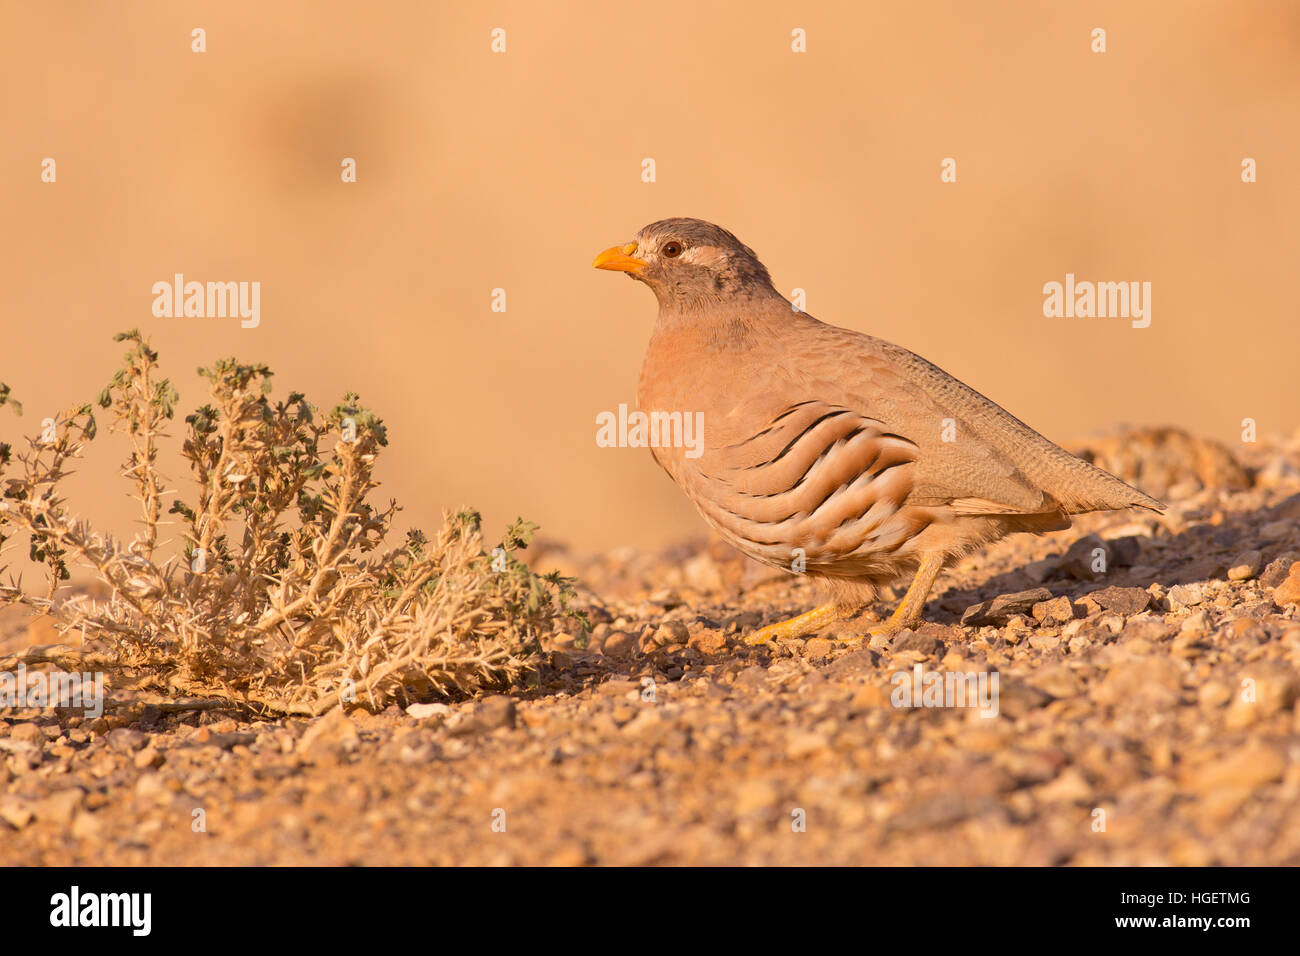 sand partridge (Ammoperdix heyi) is a gamebird in the pheasant family Phasianidae of the order Galliformes, gallinaceous - Stock Image